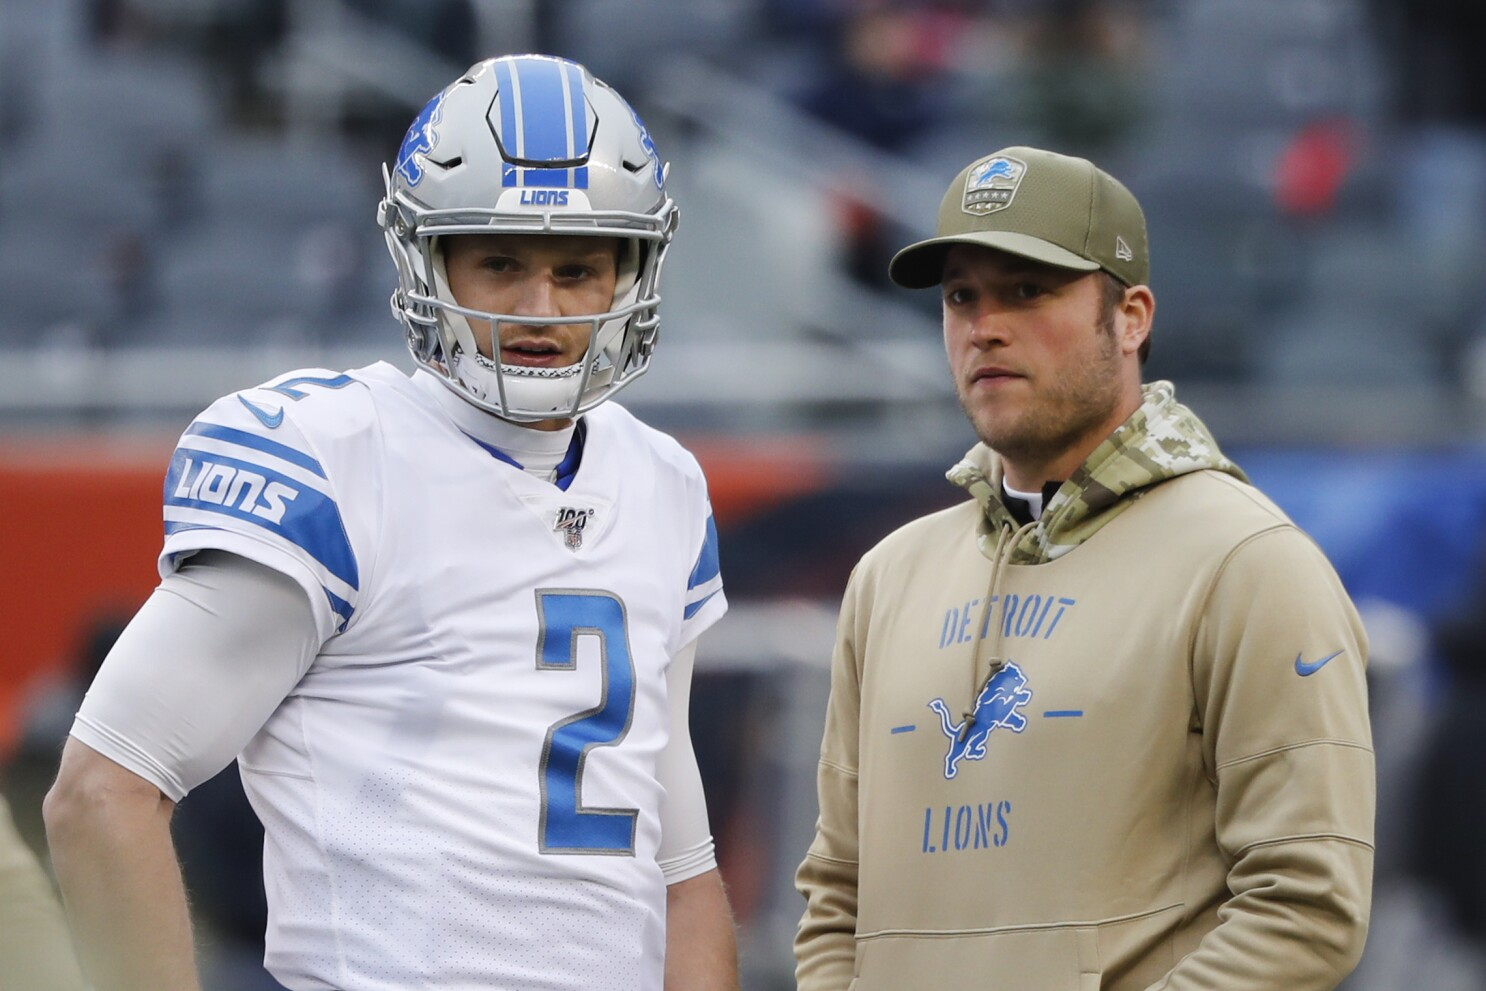 Colts Qb Brian Hoyer Makes 1st Start In More Than 2 Years The San Diego Union Tribune